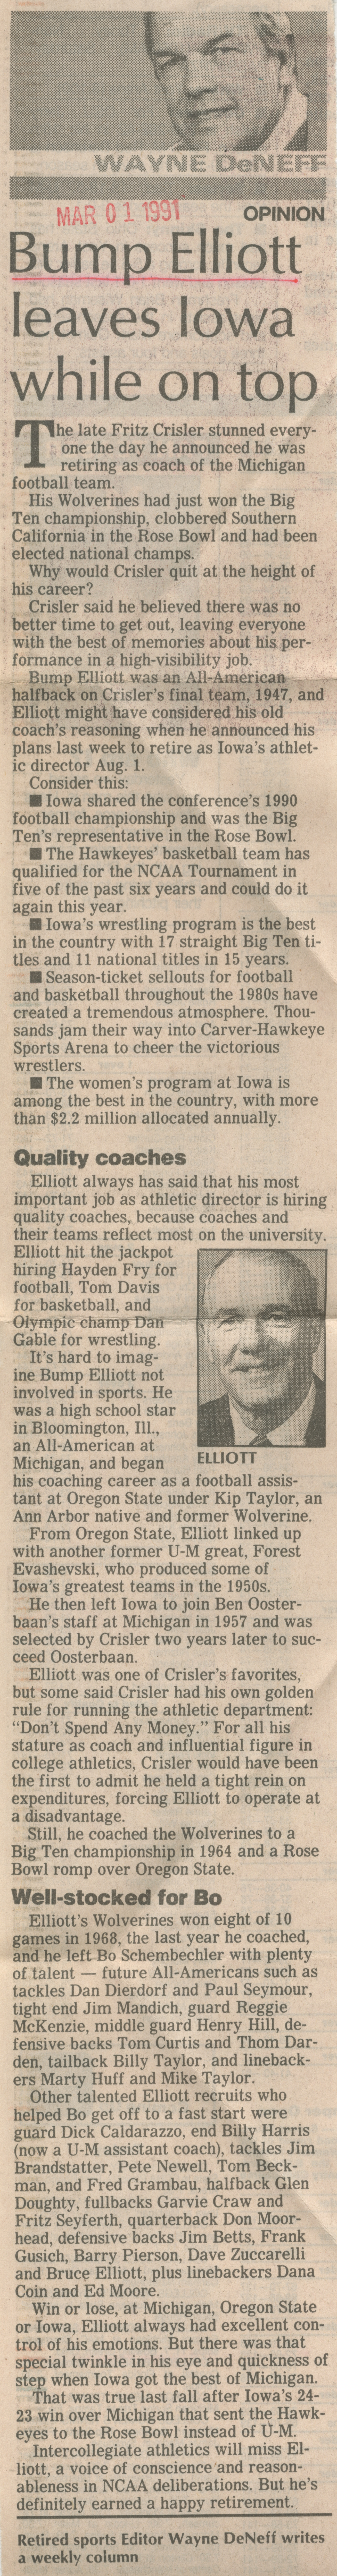 Bump Elliott leaves Iowa while on top image